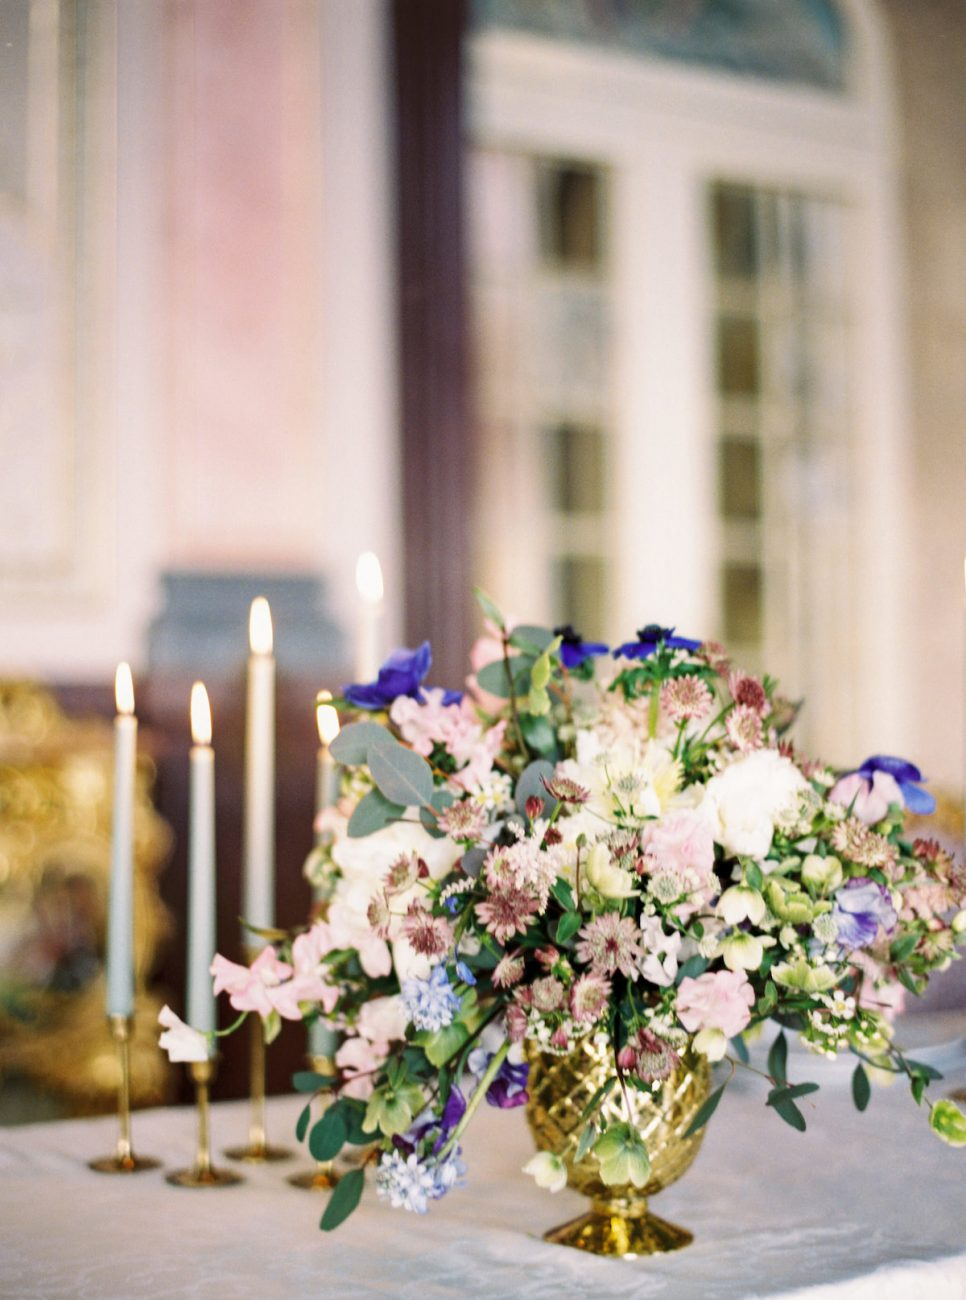 Palace Wedding Inspiration - candles and flowers